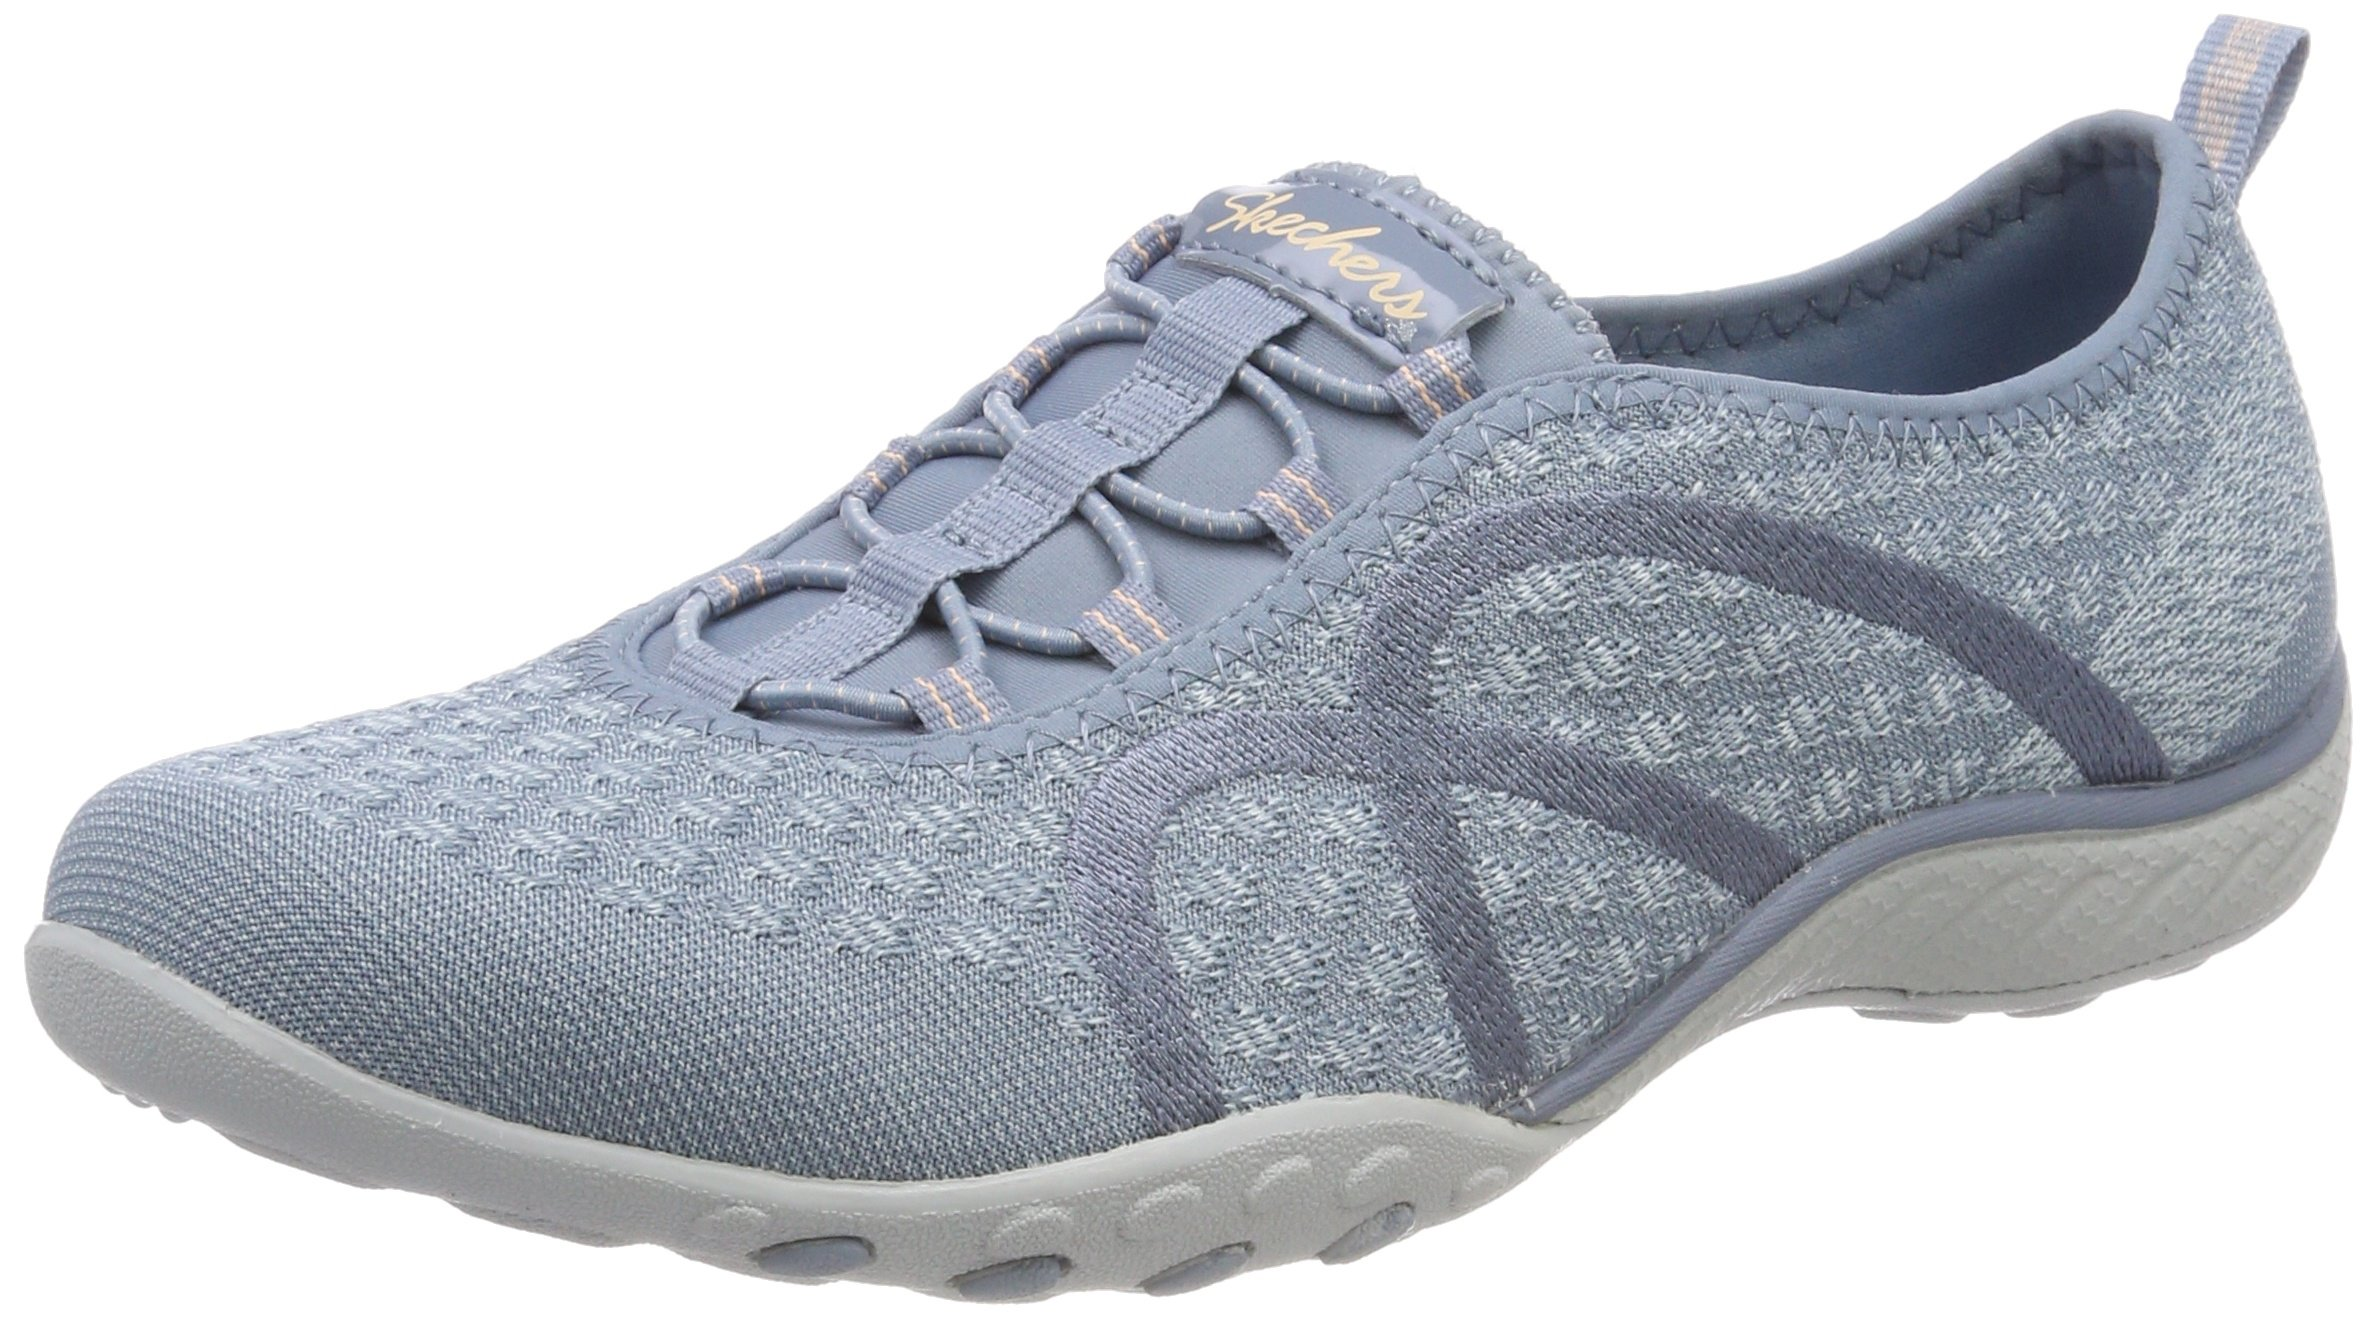 Skechers Relaxed Fit Breathe Easy Fortune Knit Womens Bungee Sneakers Blue 8